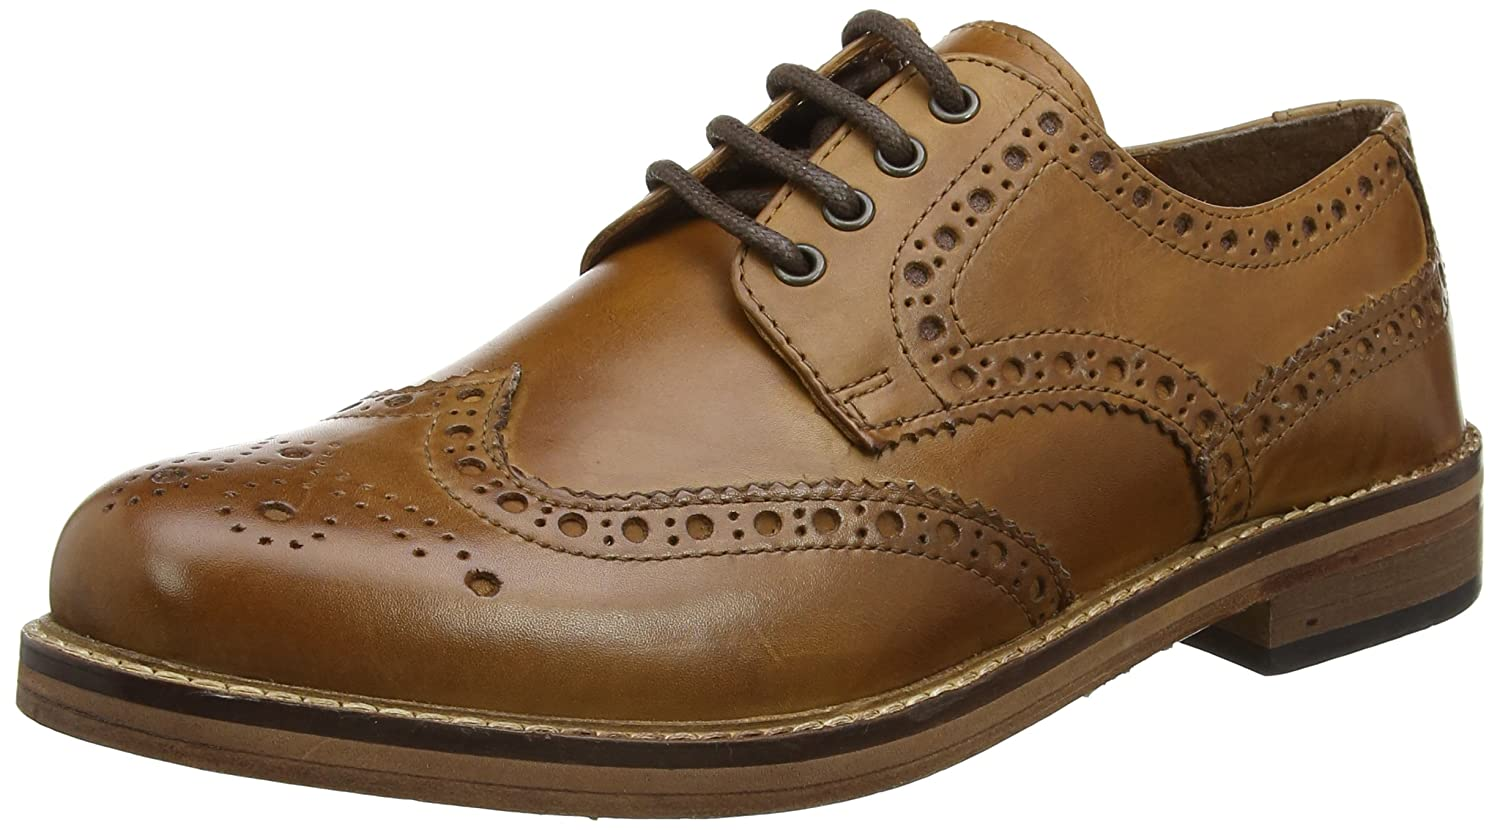 TALLA 43 EU. Red Tape Meath, Zapatos de Cordones Brogue para Hombre